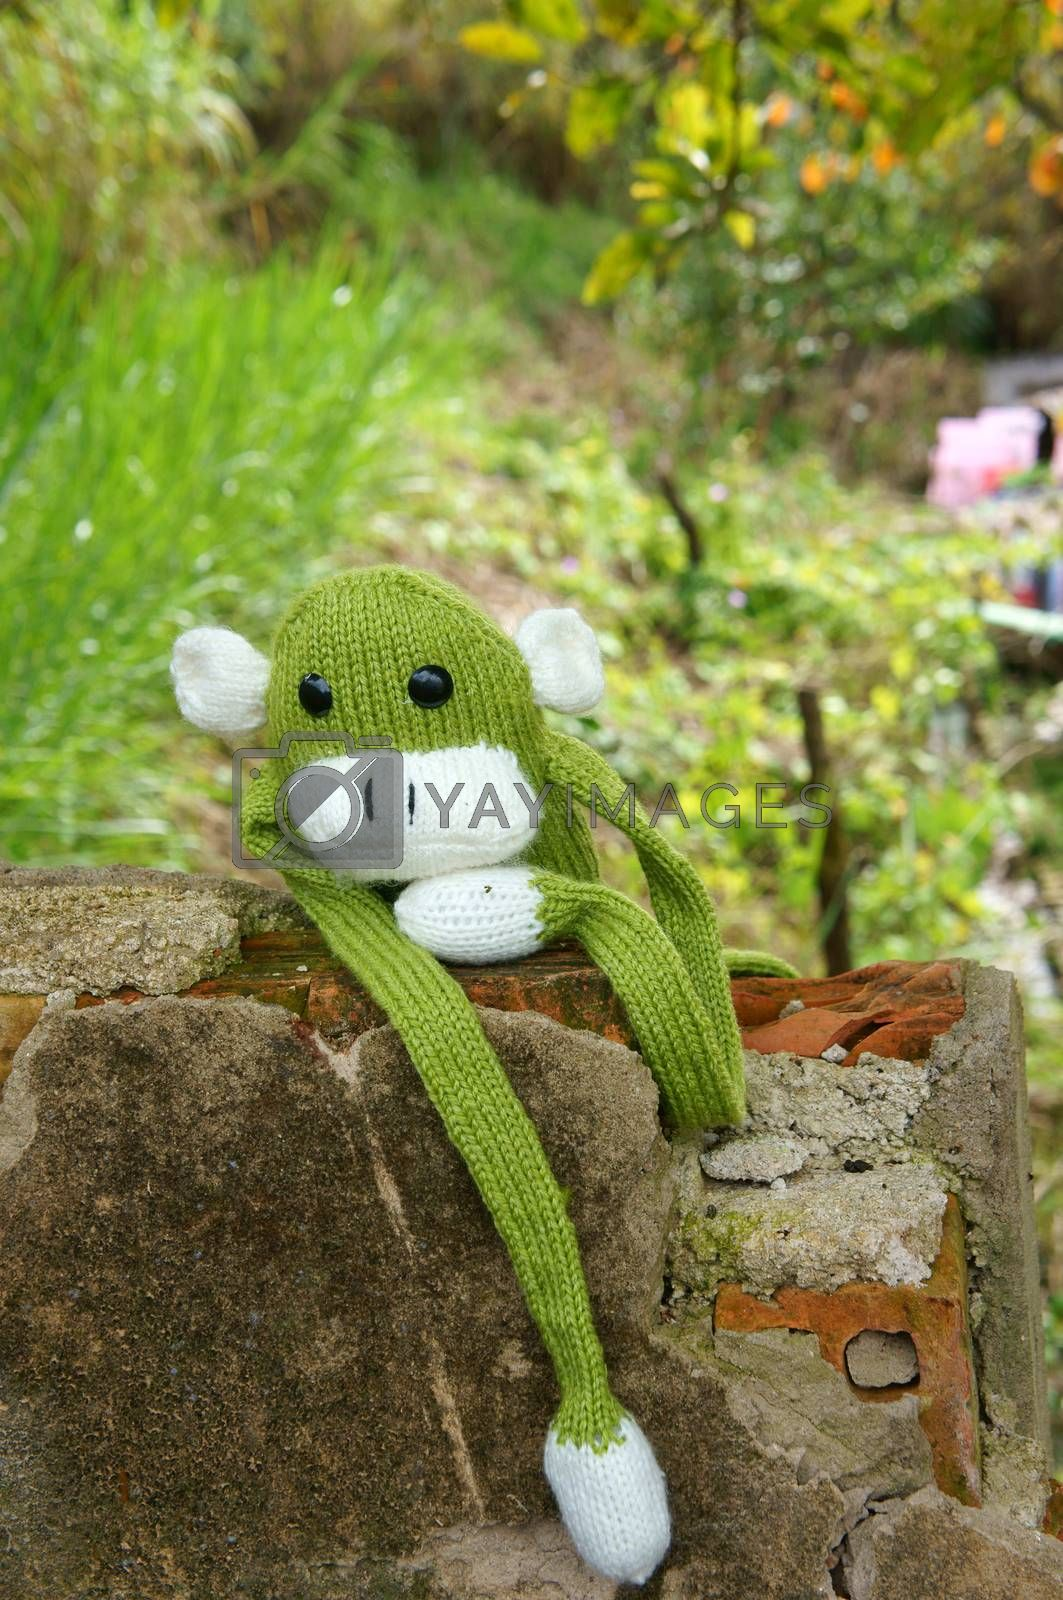 Abstract knitted monkey, symbol of year 2016, handmade toy from yarn, she lie down or sit lonely among nature, happy new year 2016, year of the monkey